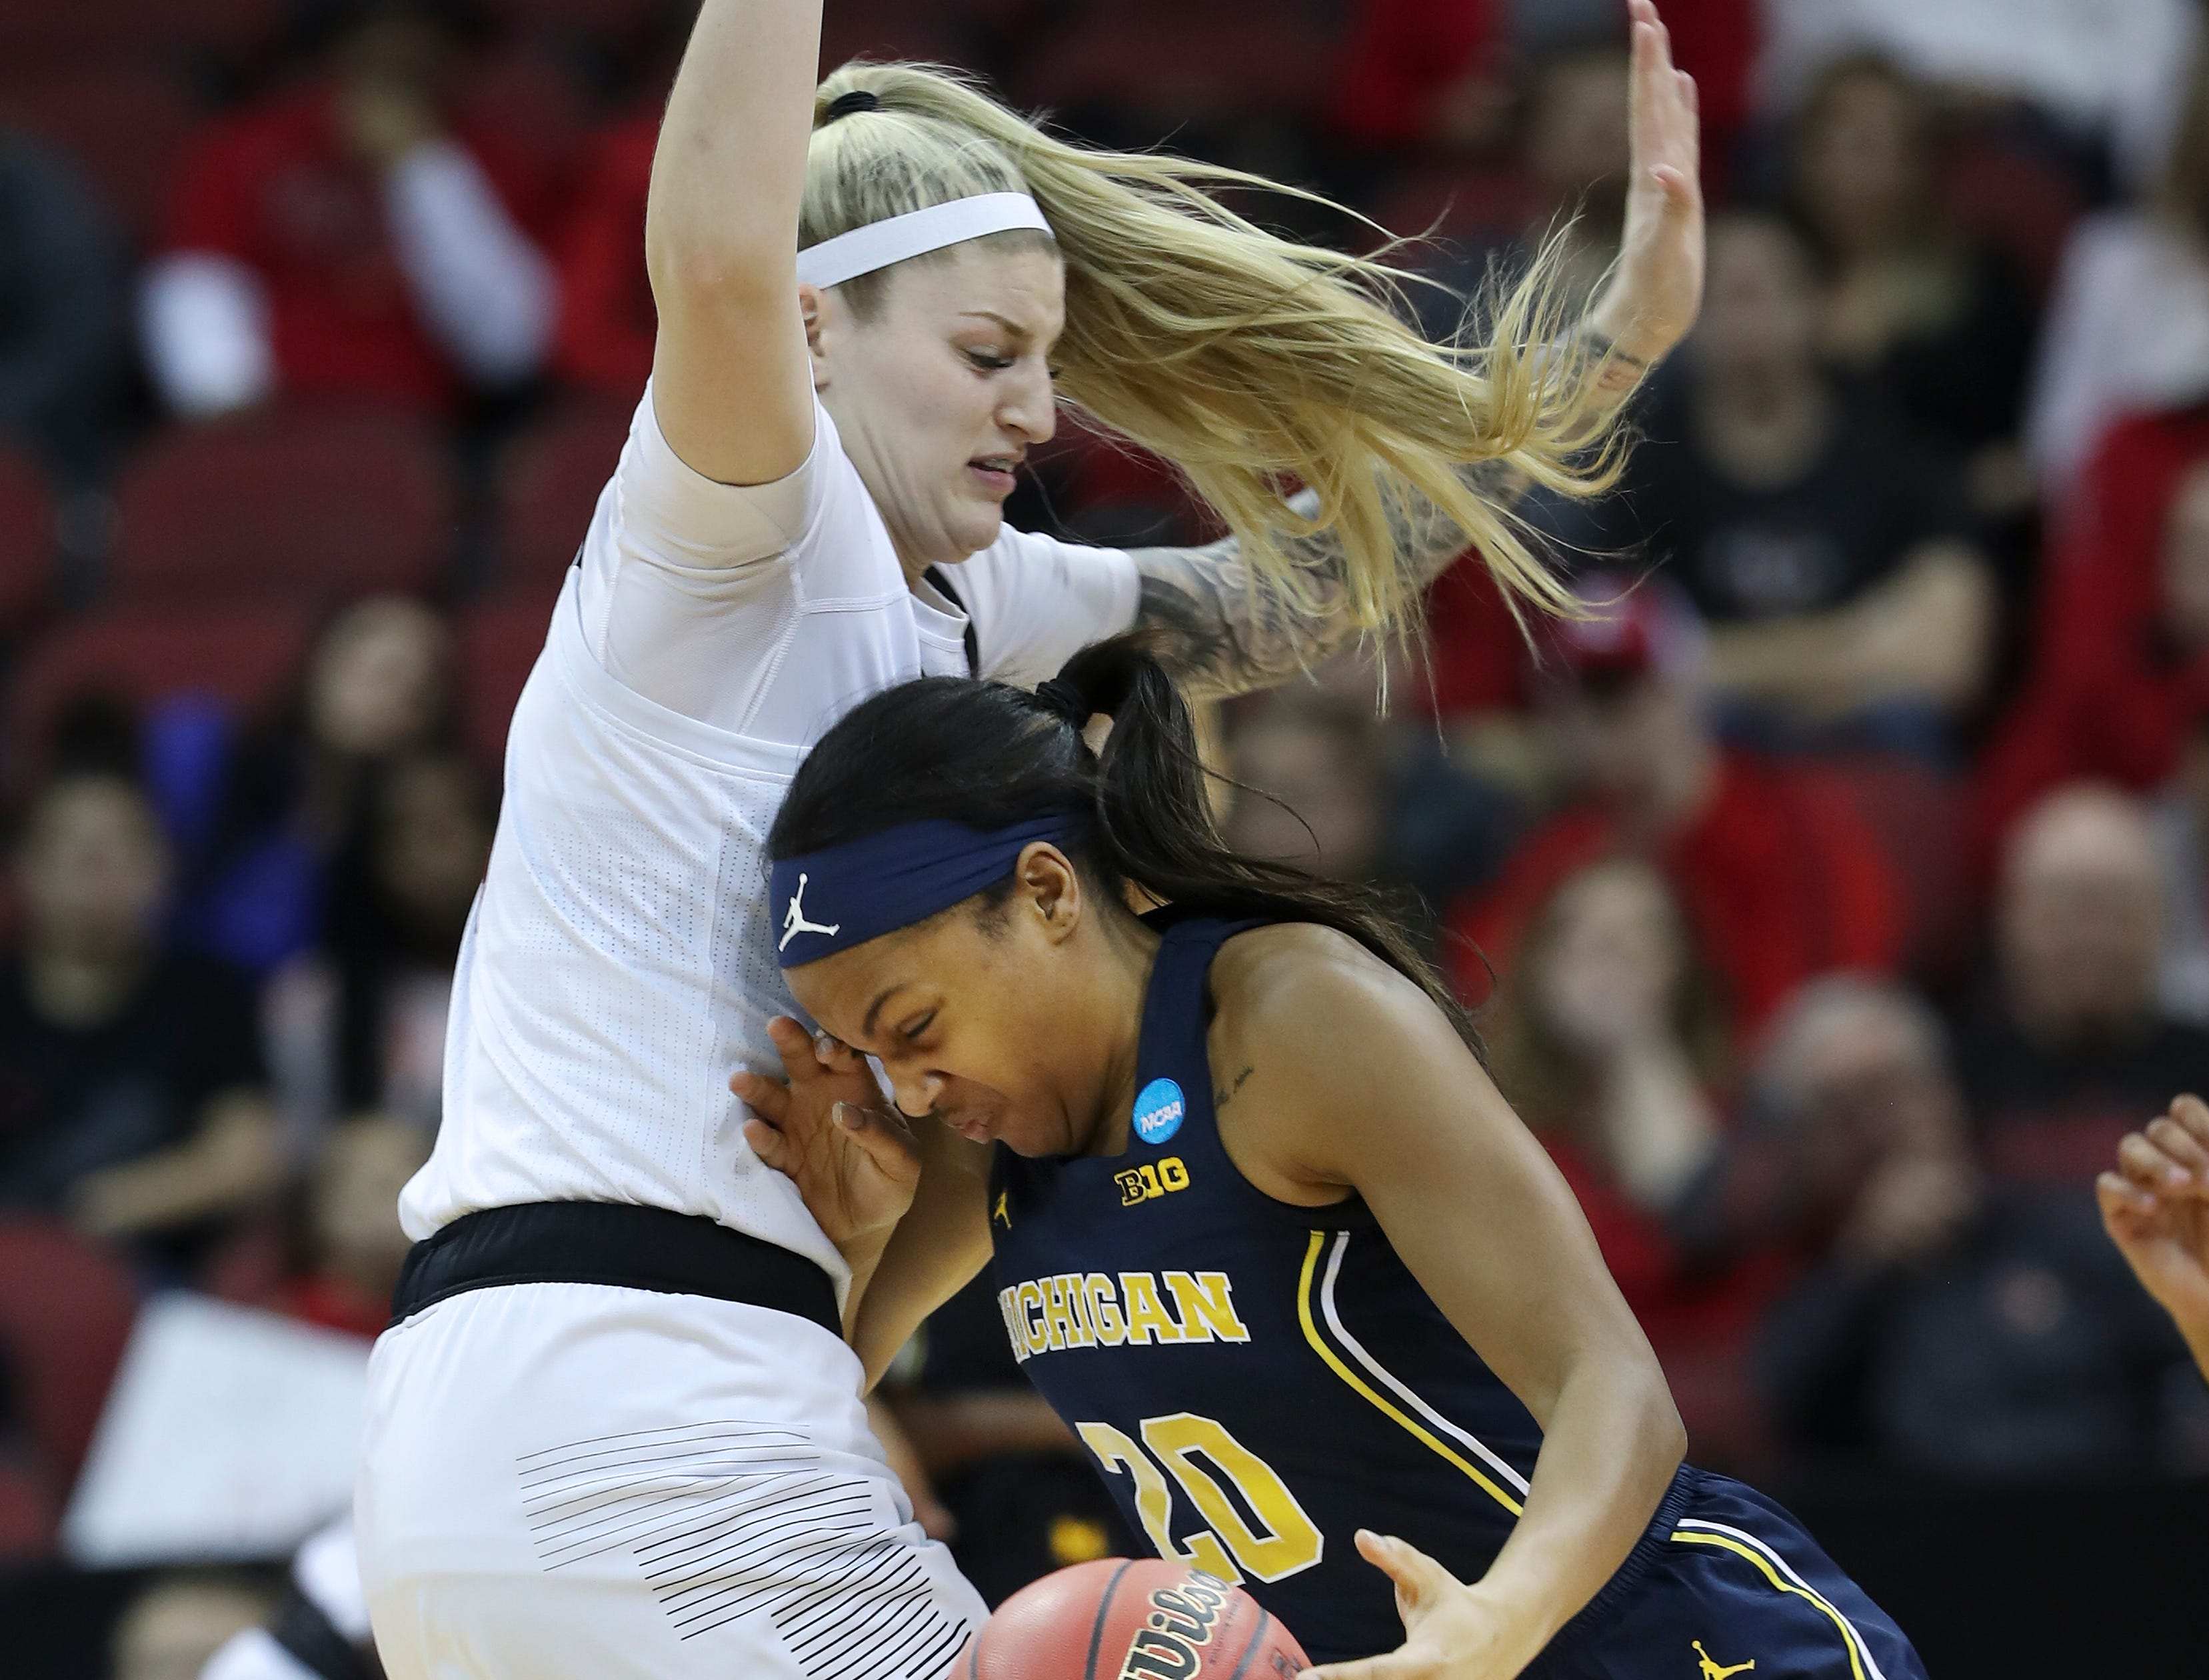 Michigan's Deja Church (20) drives against U of L'sSam Fuehring (3) during the second round of their NCAA Tournament game at the Yum Center.Mar. 24, 2019